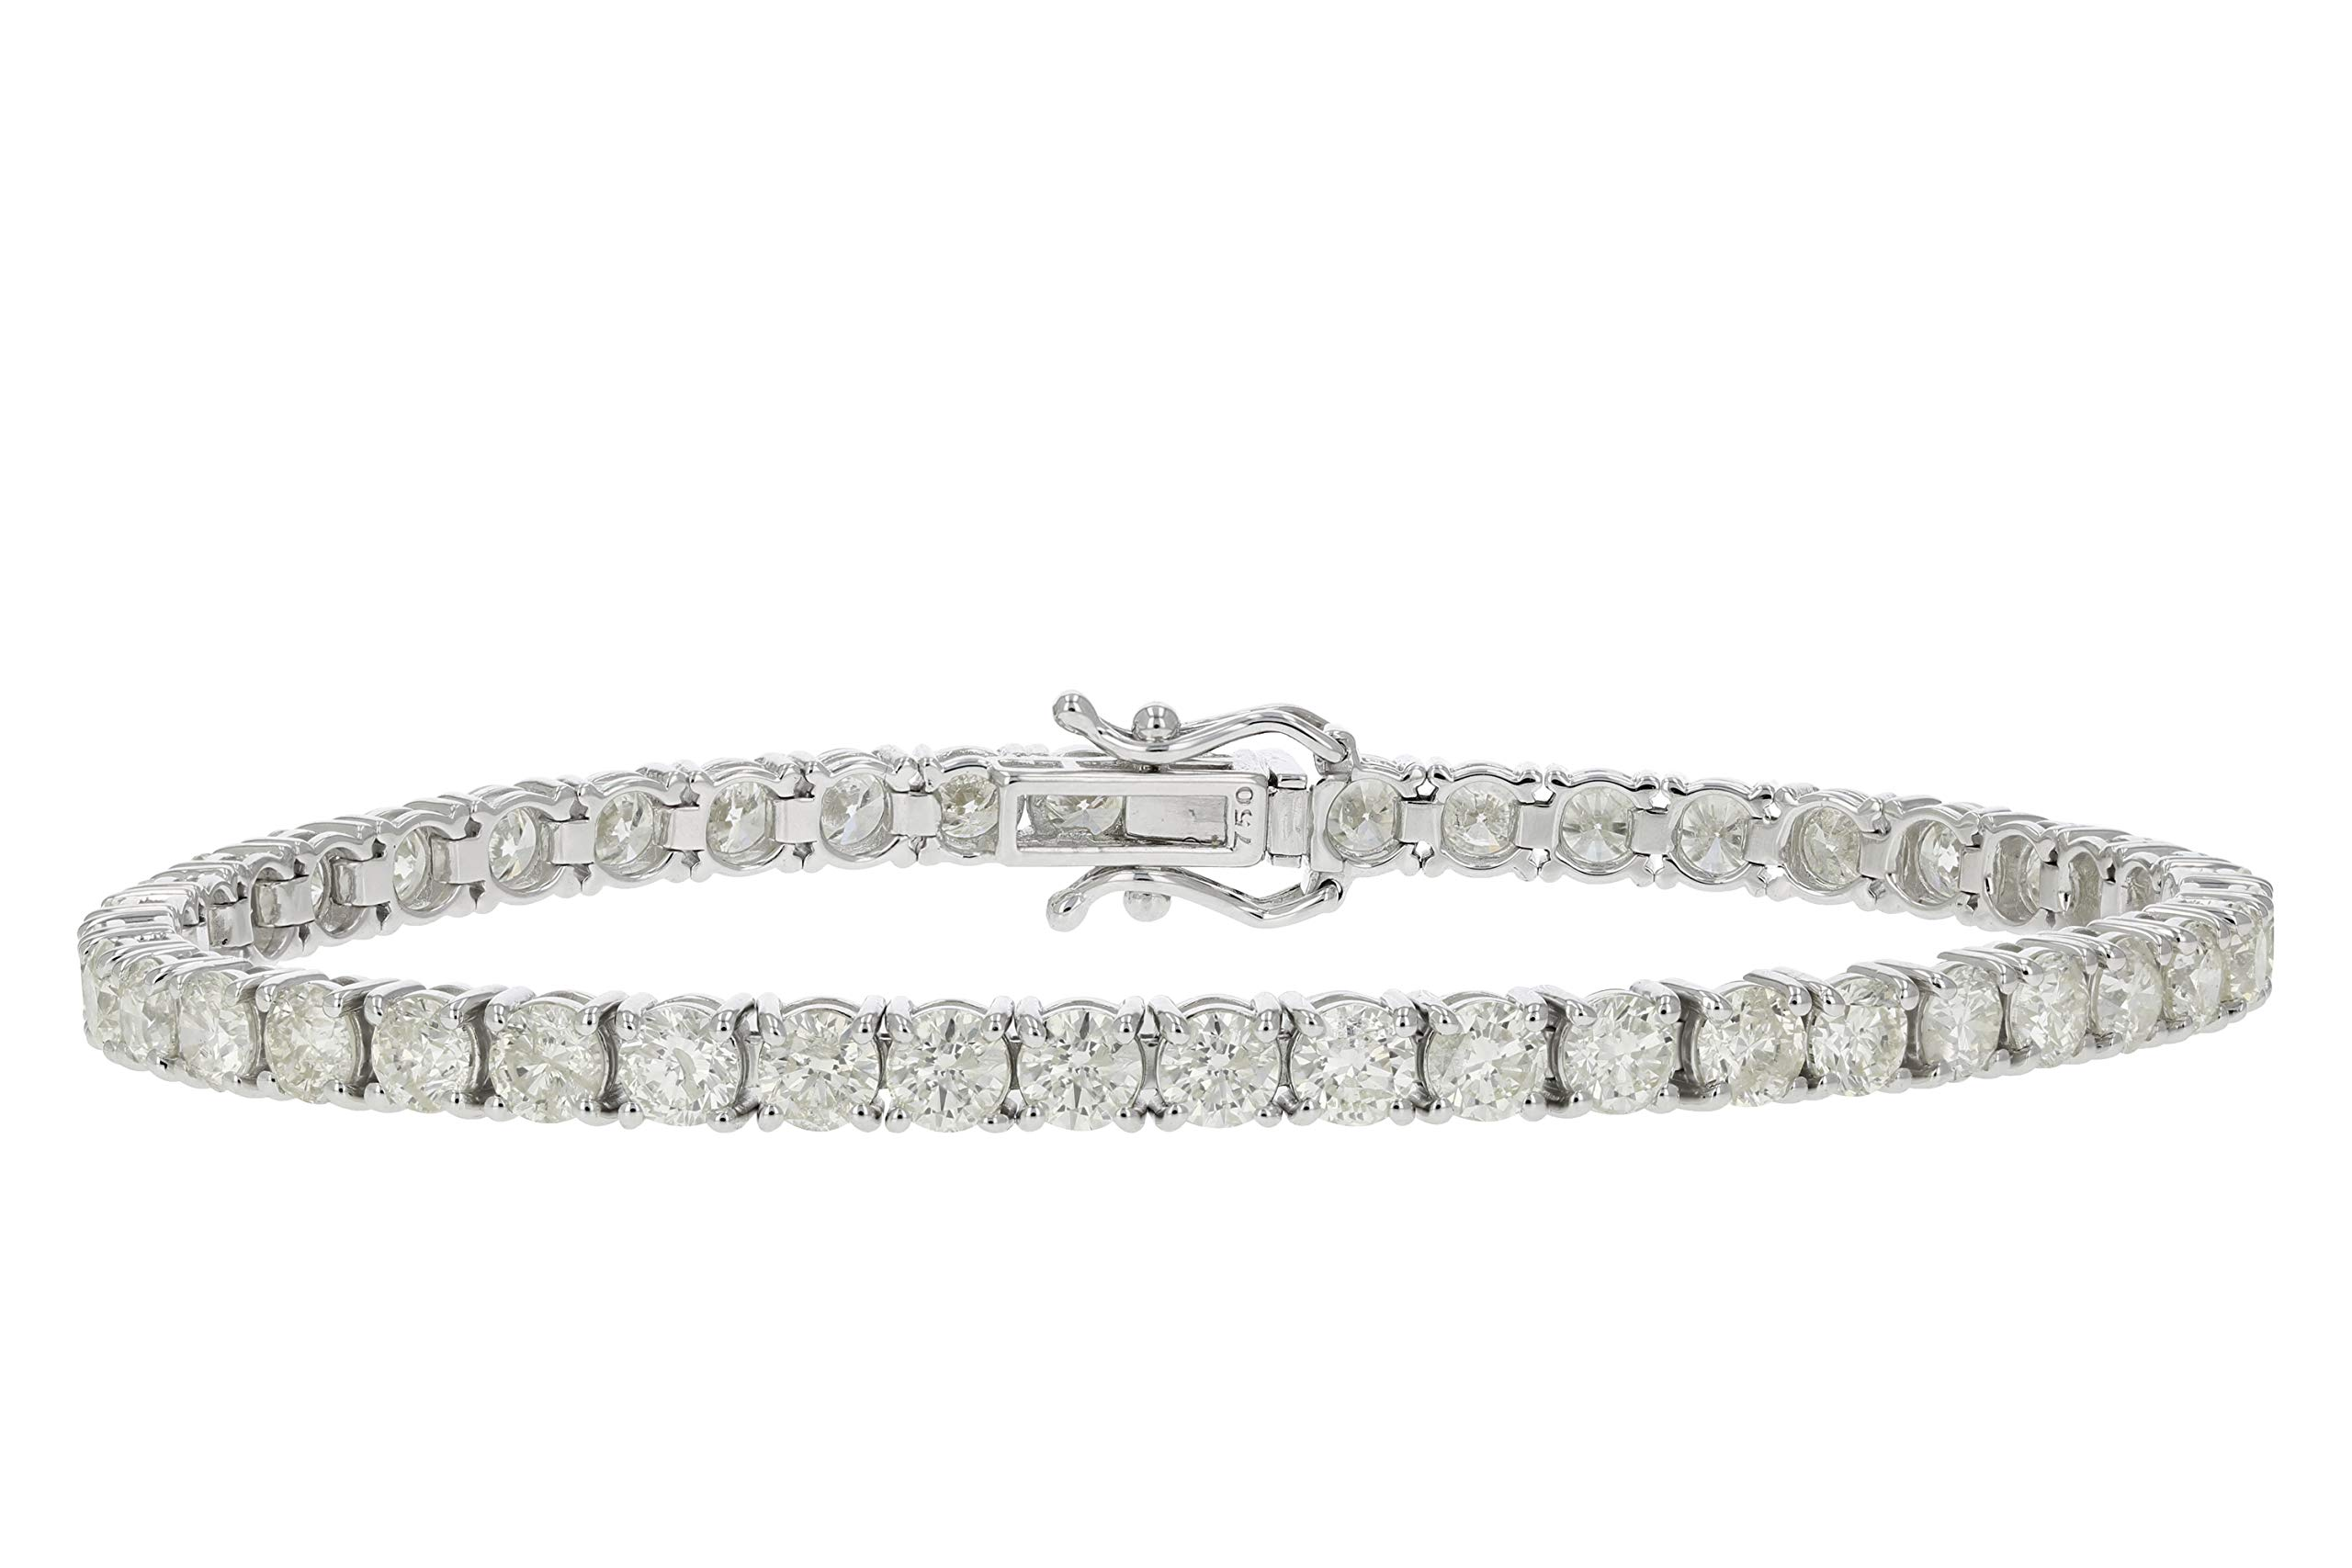 8 cttw Certified Classic Tennis Diamond Bracelet 14K White Gold I1-I2 Clarity K-L Color by Vir Jewels